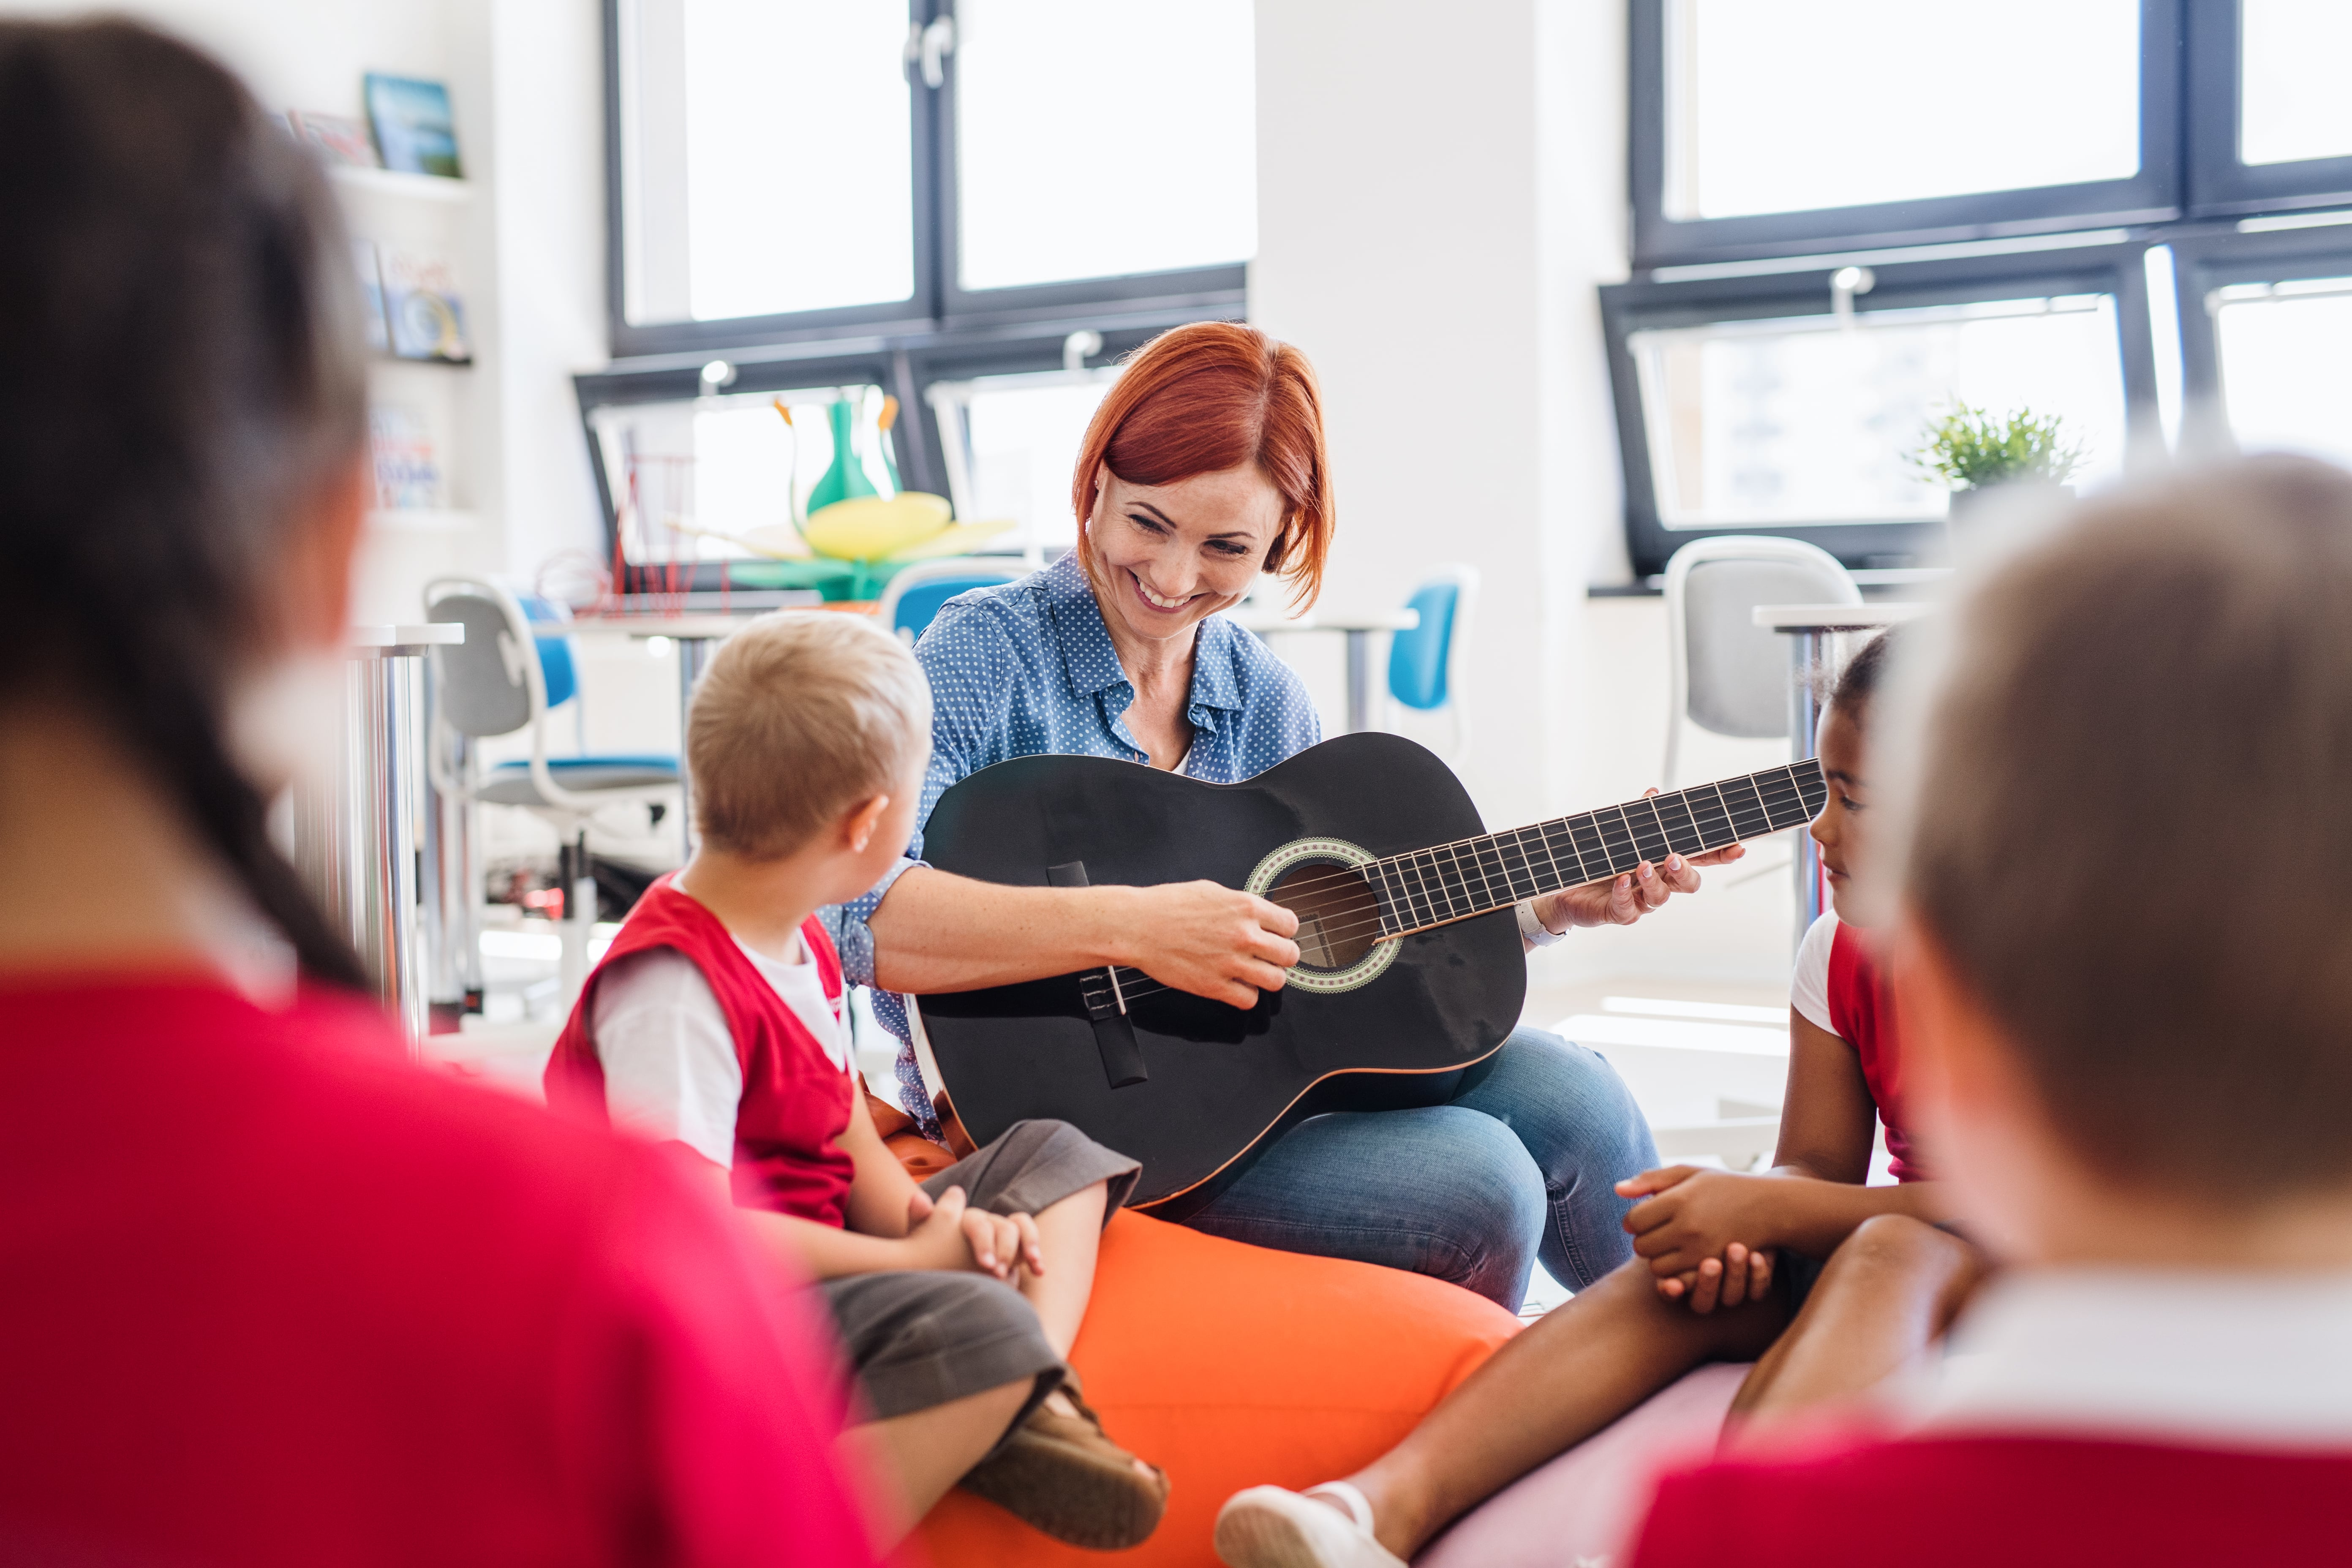 A group of small school kids and teacher with guitar sitting on the floor in class, singing.